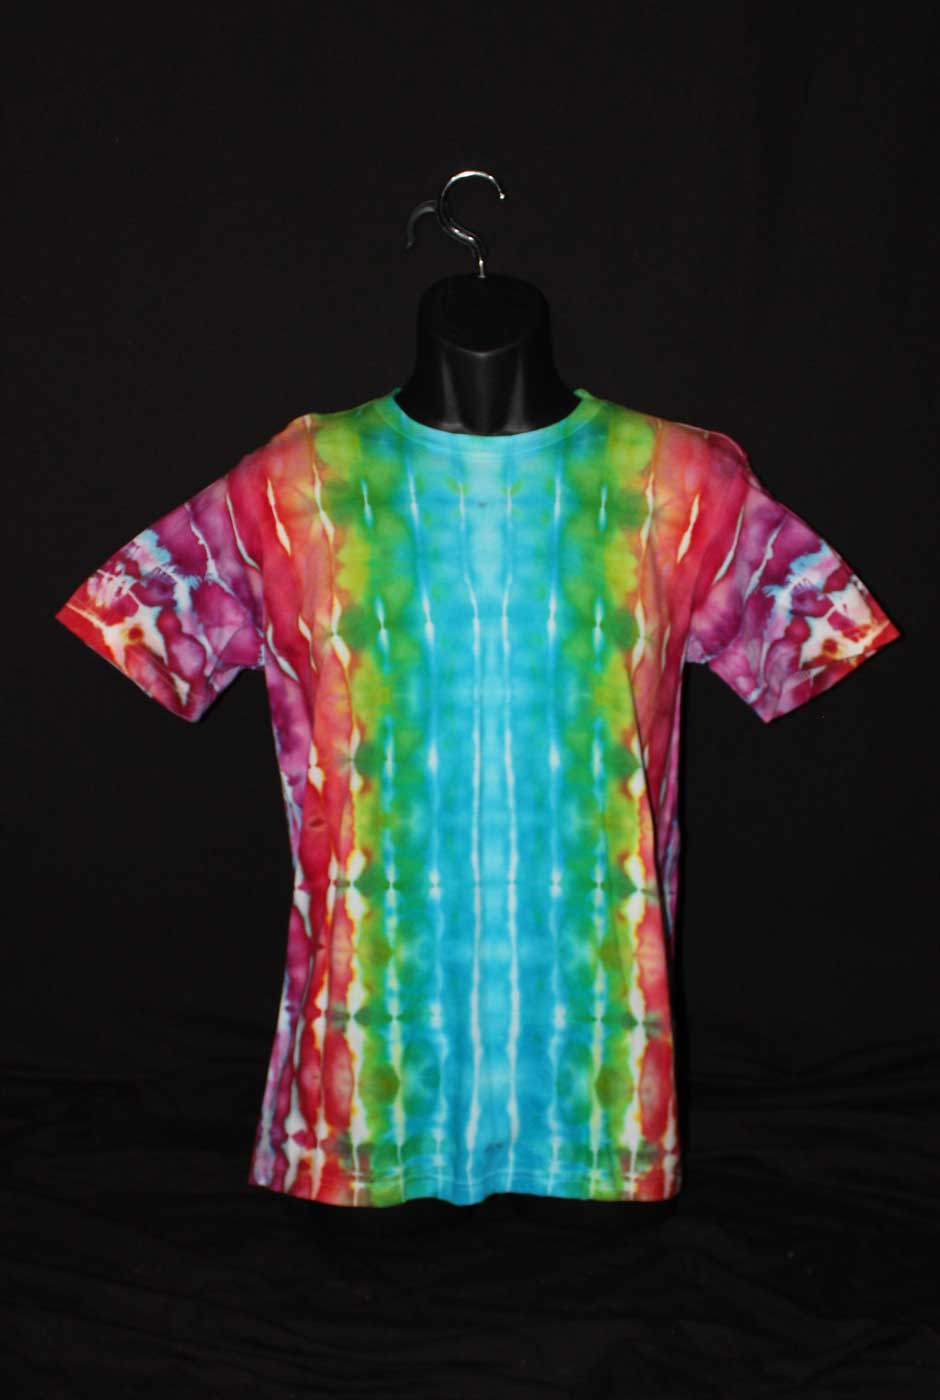 Prods Bands Of Color Organic T Shirt Fp